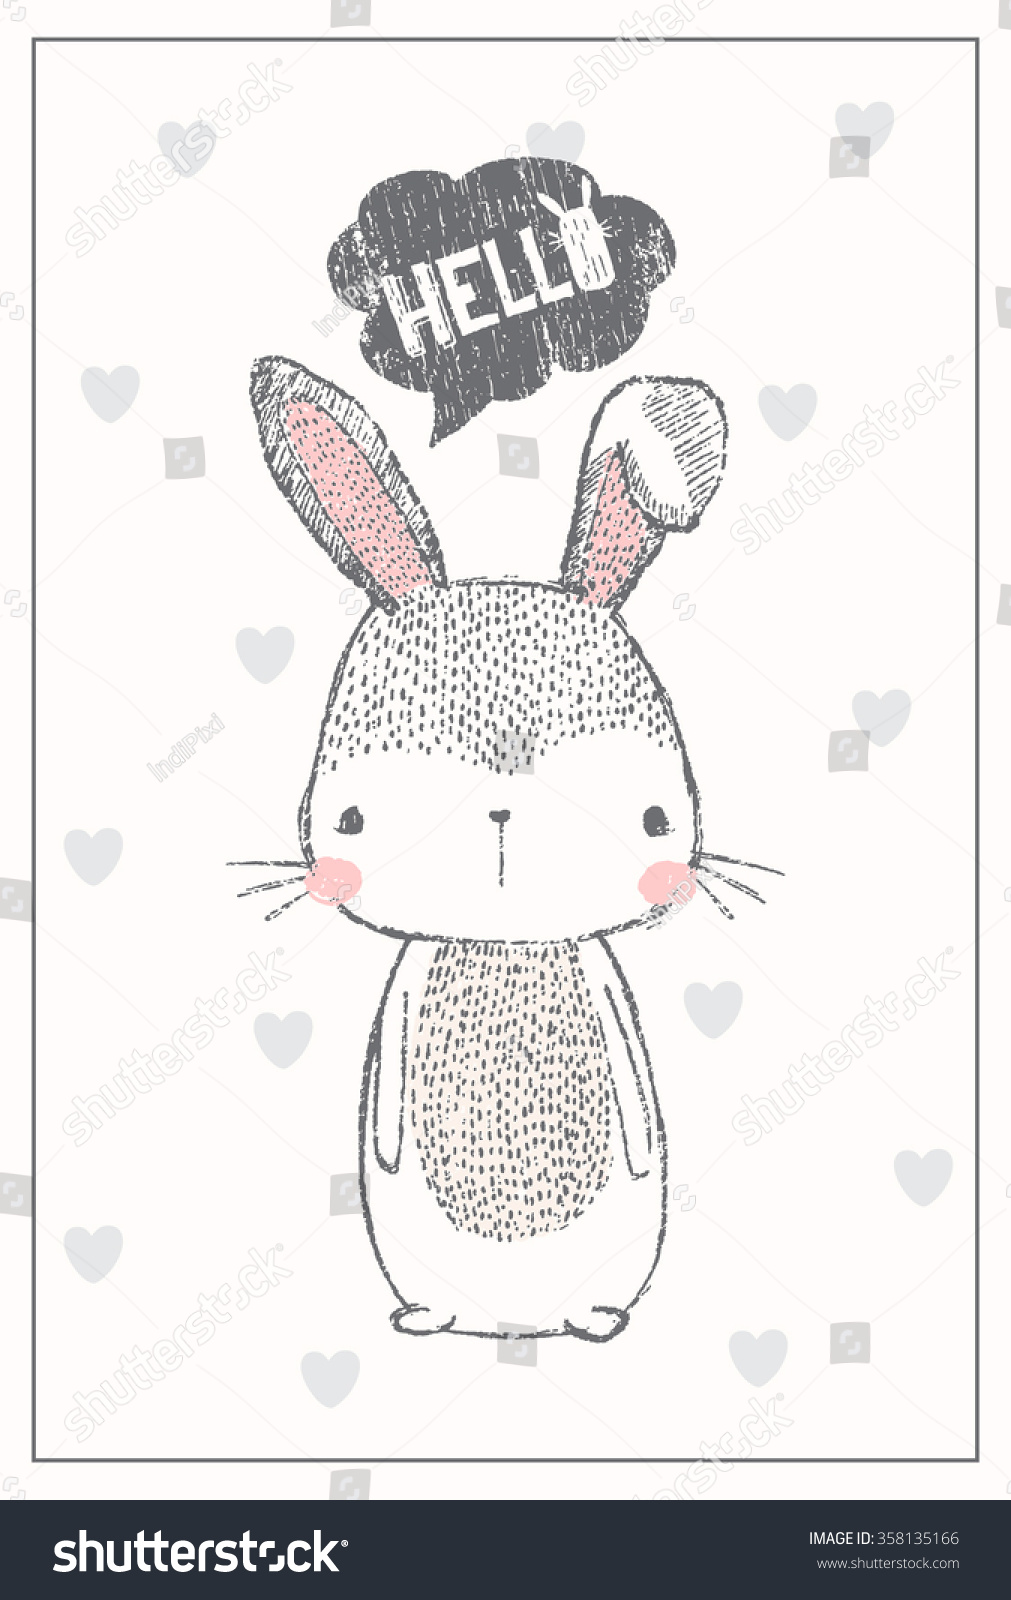 cute bunny illustration for apparel or other uses in vector